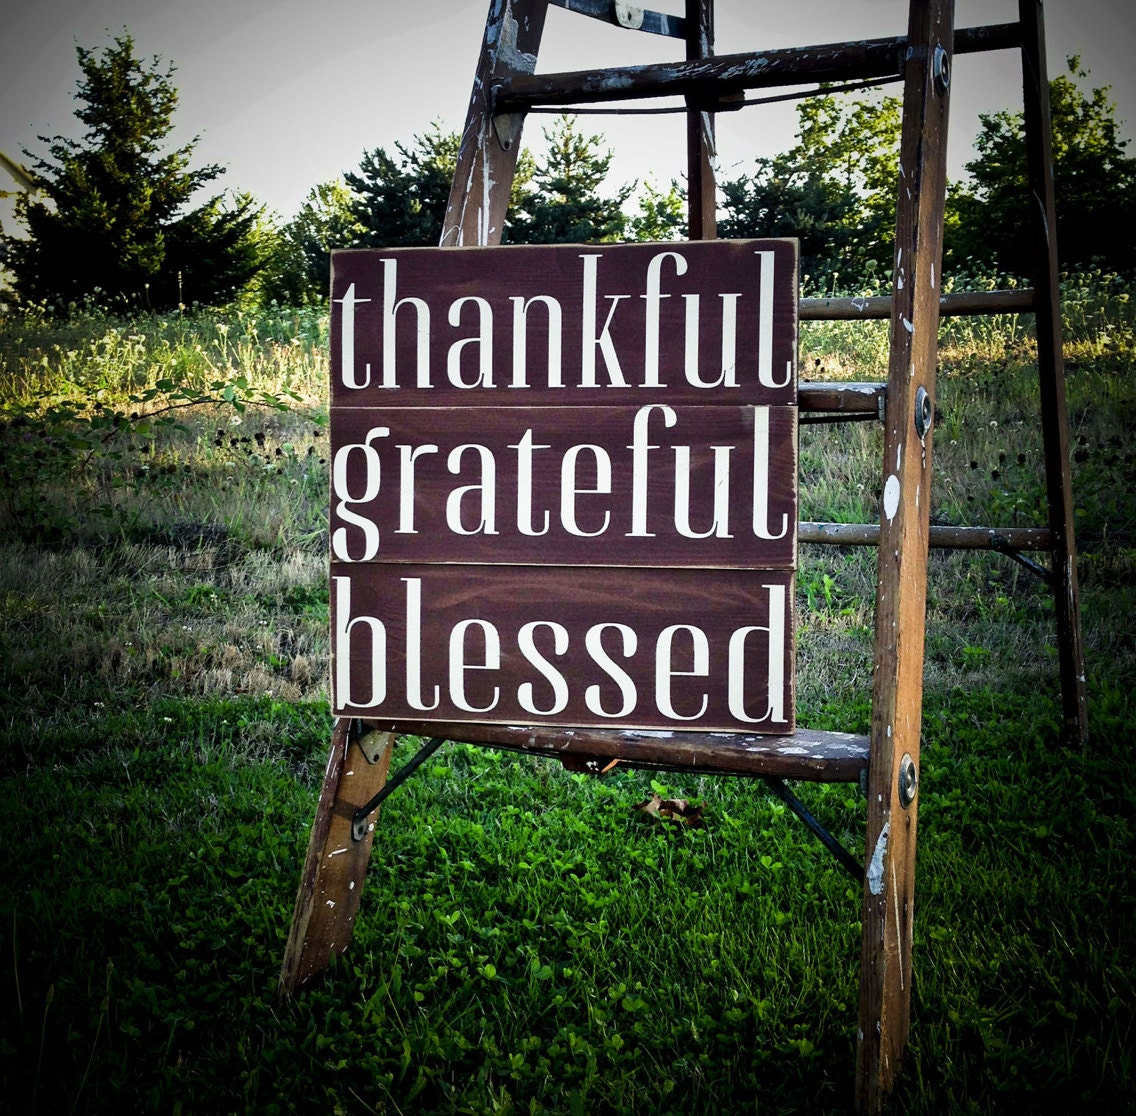 Thankful - Grateful - Blessed Decorative Sign - Holidays - Thanksgiving - Harvest Handmade Wall Hanging - UnchainedBracelets